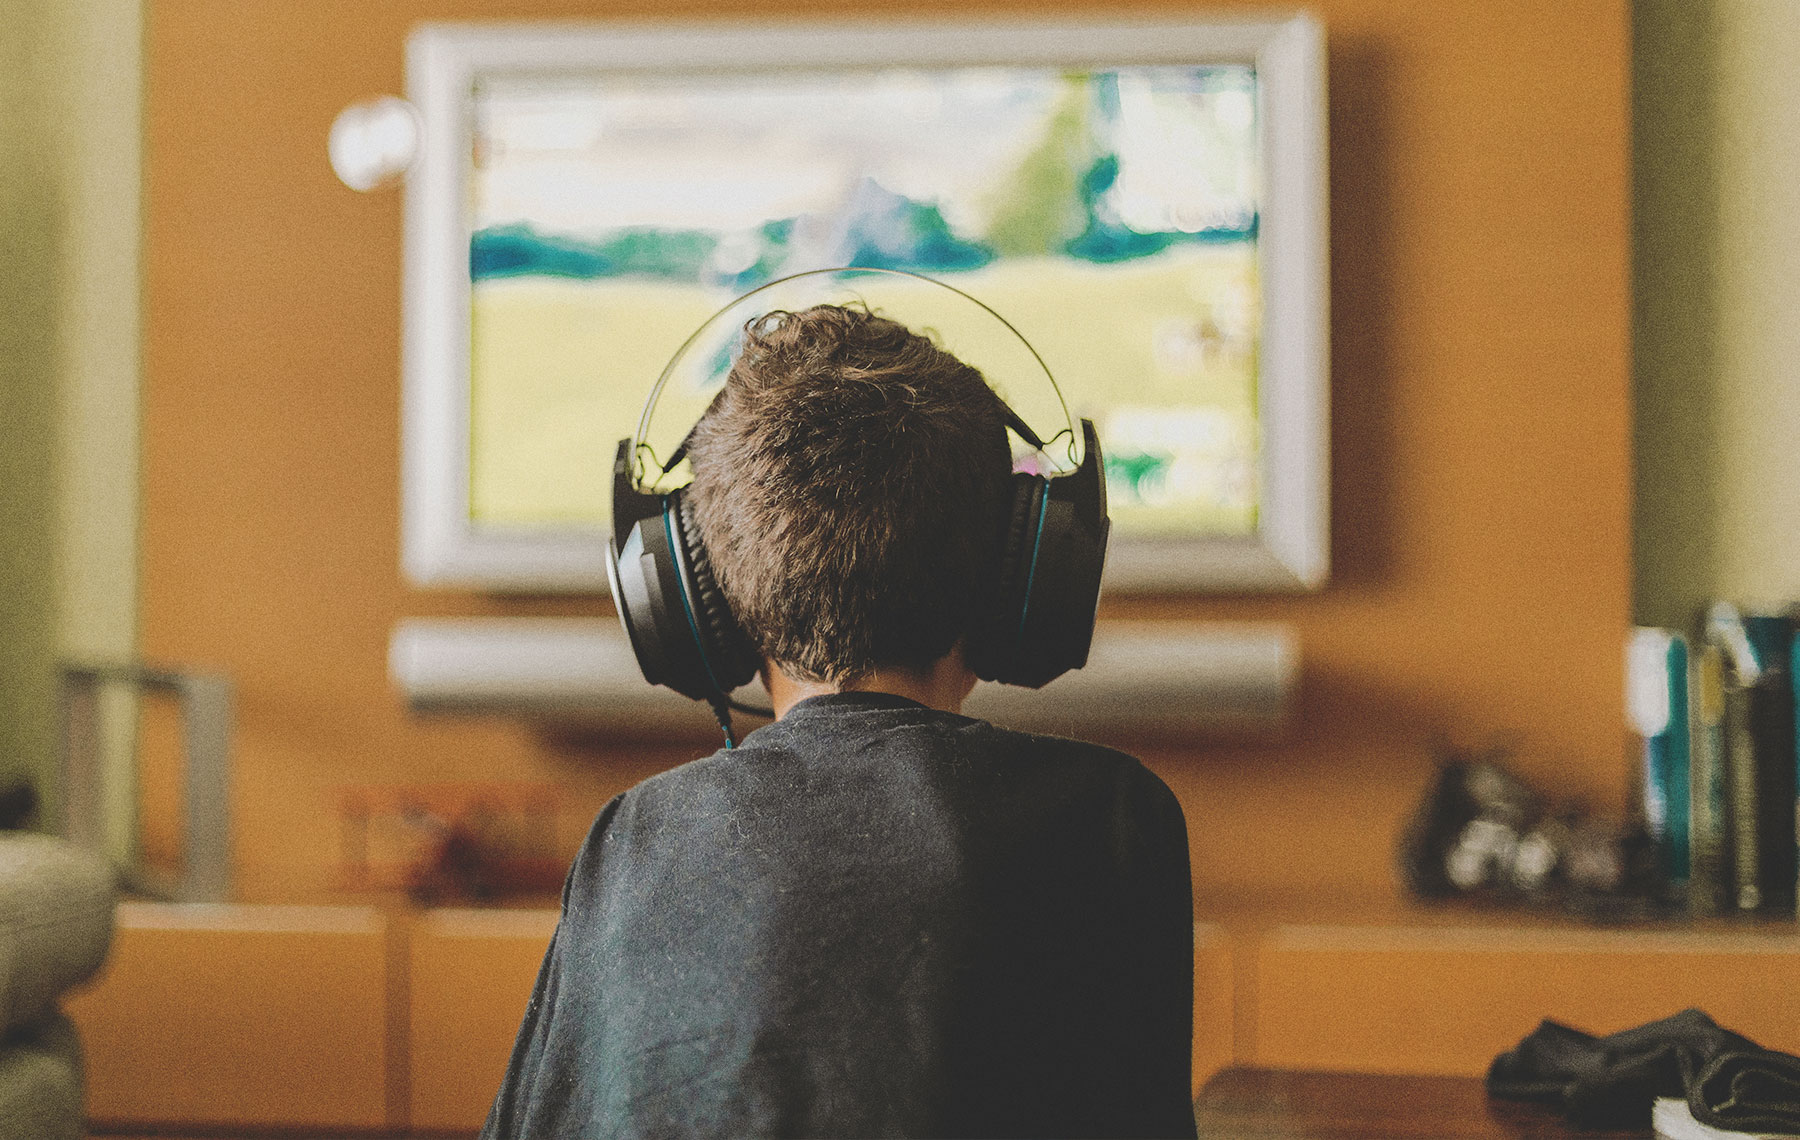 back of a kid watching tv and wearing headphones